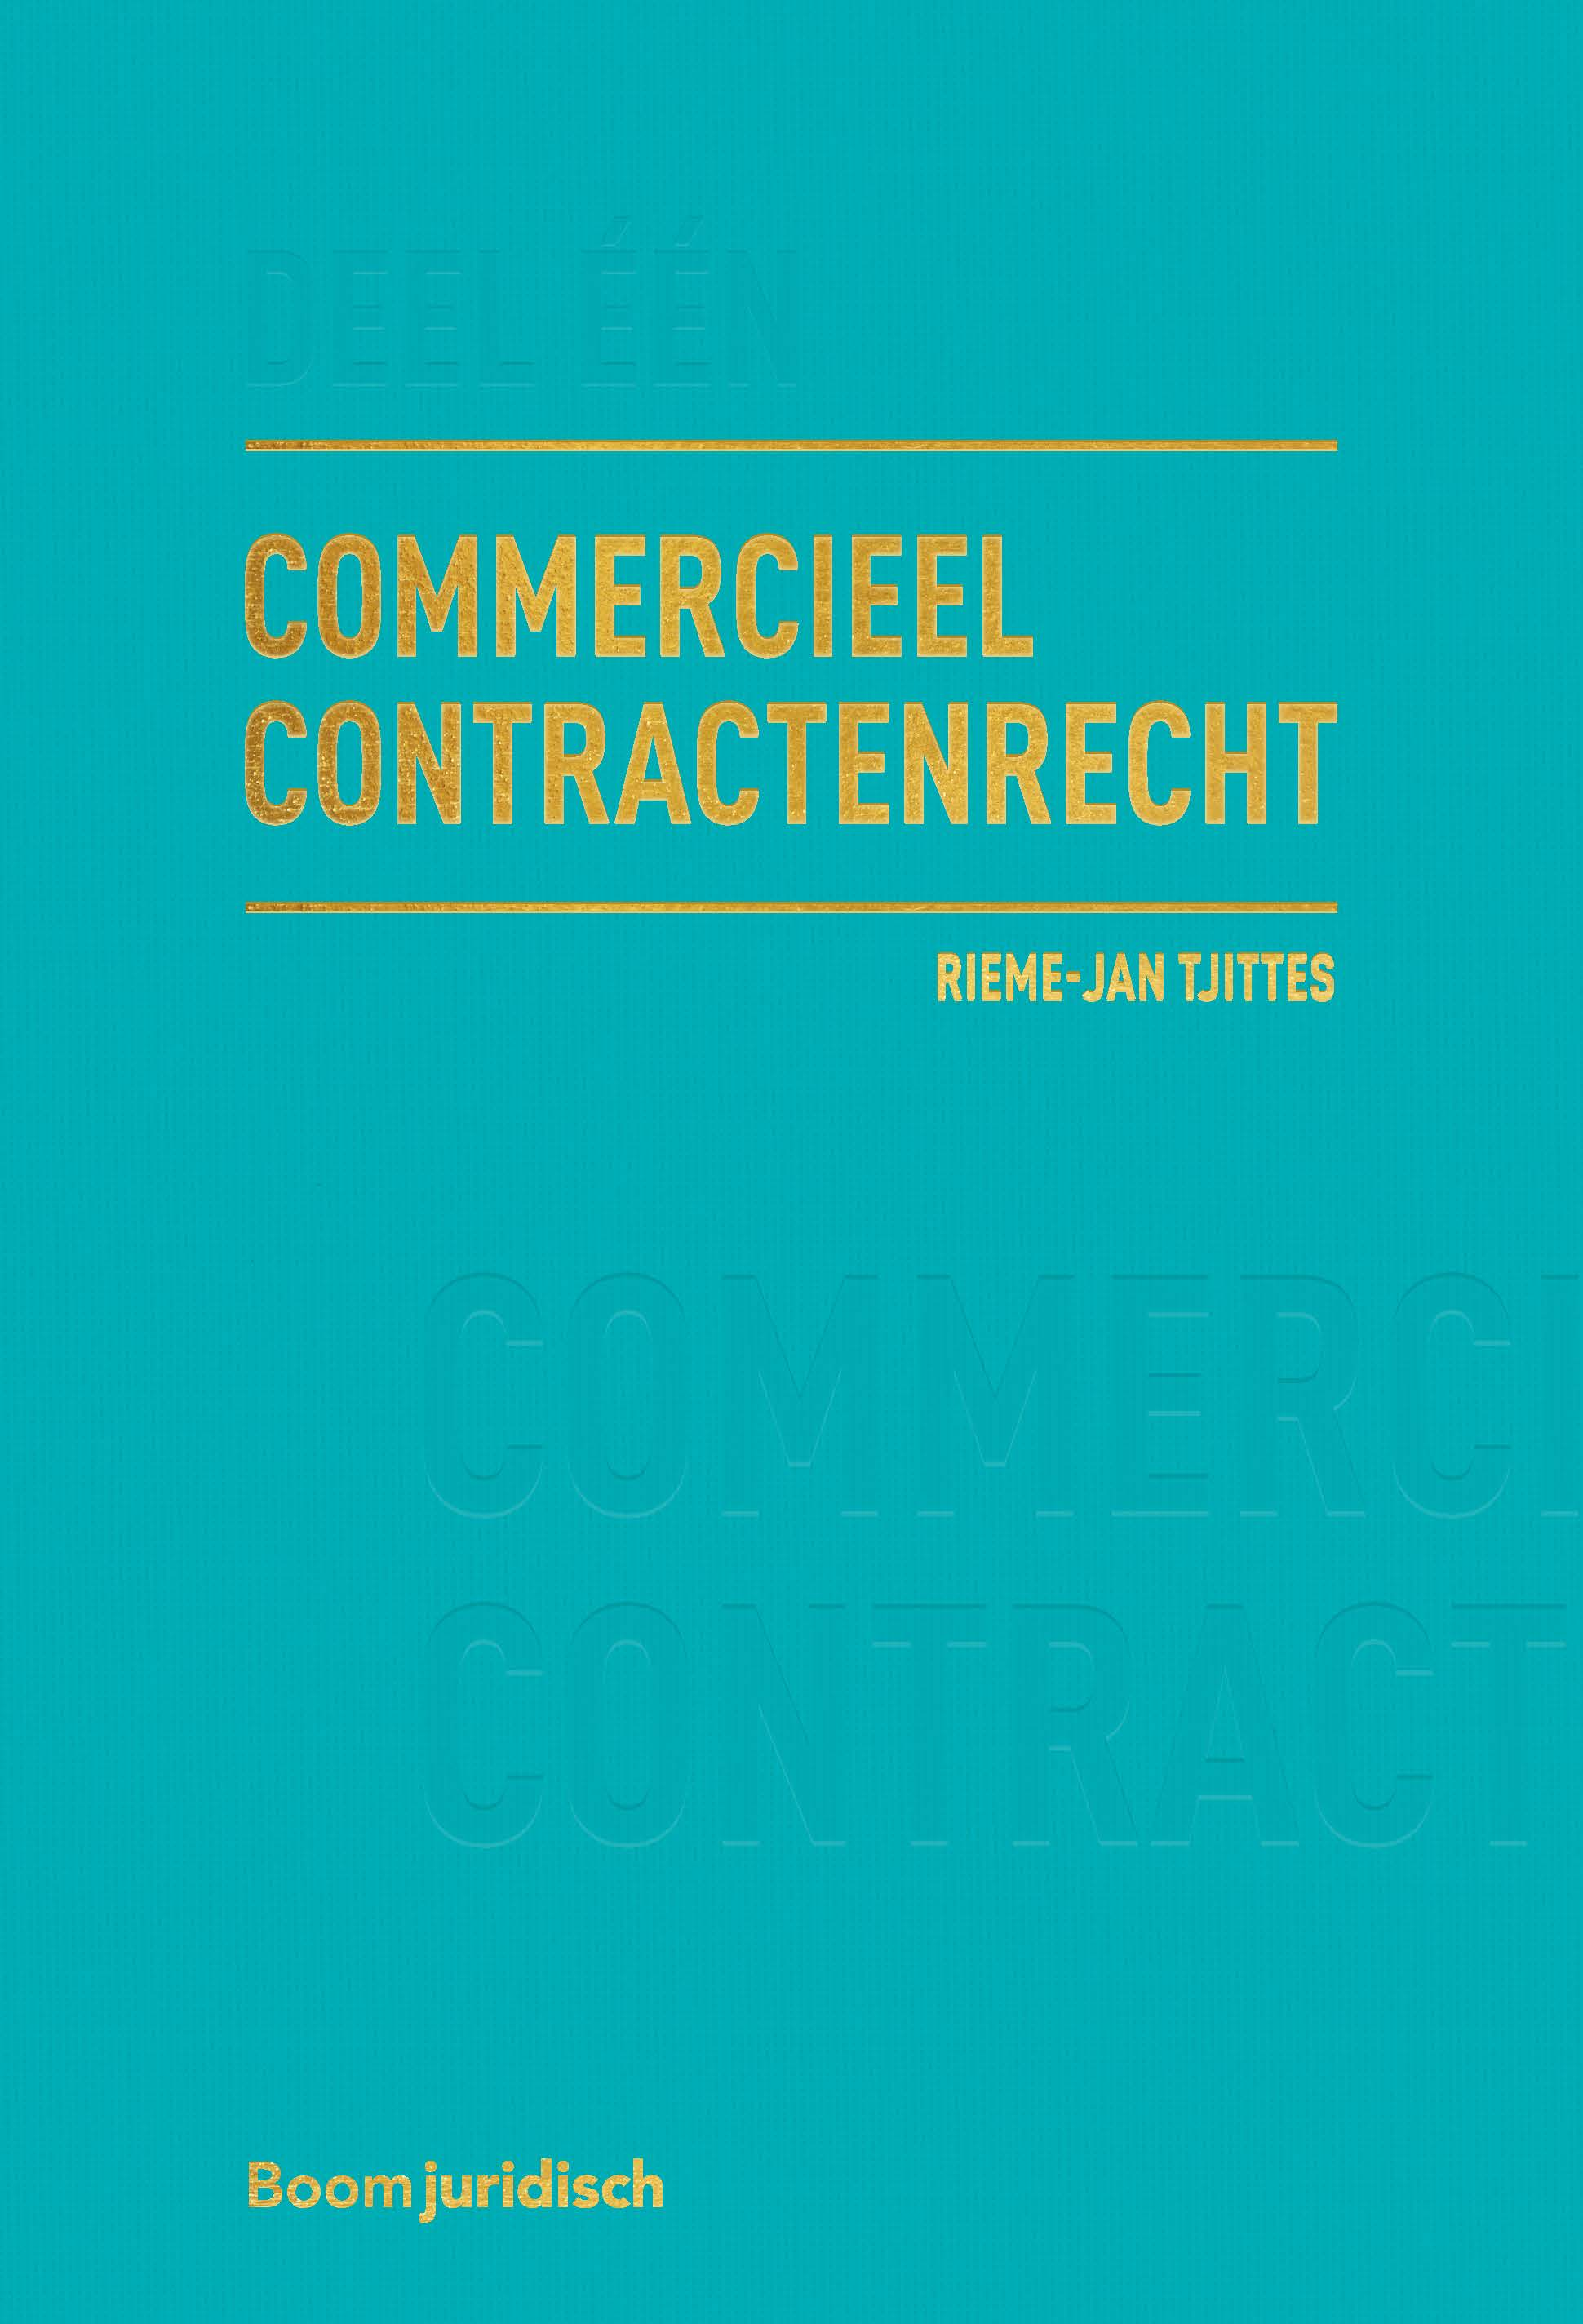 Commercieel Contractenrecht